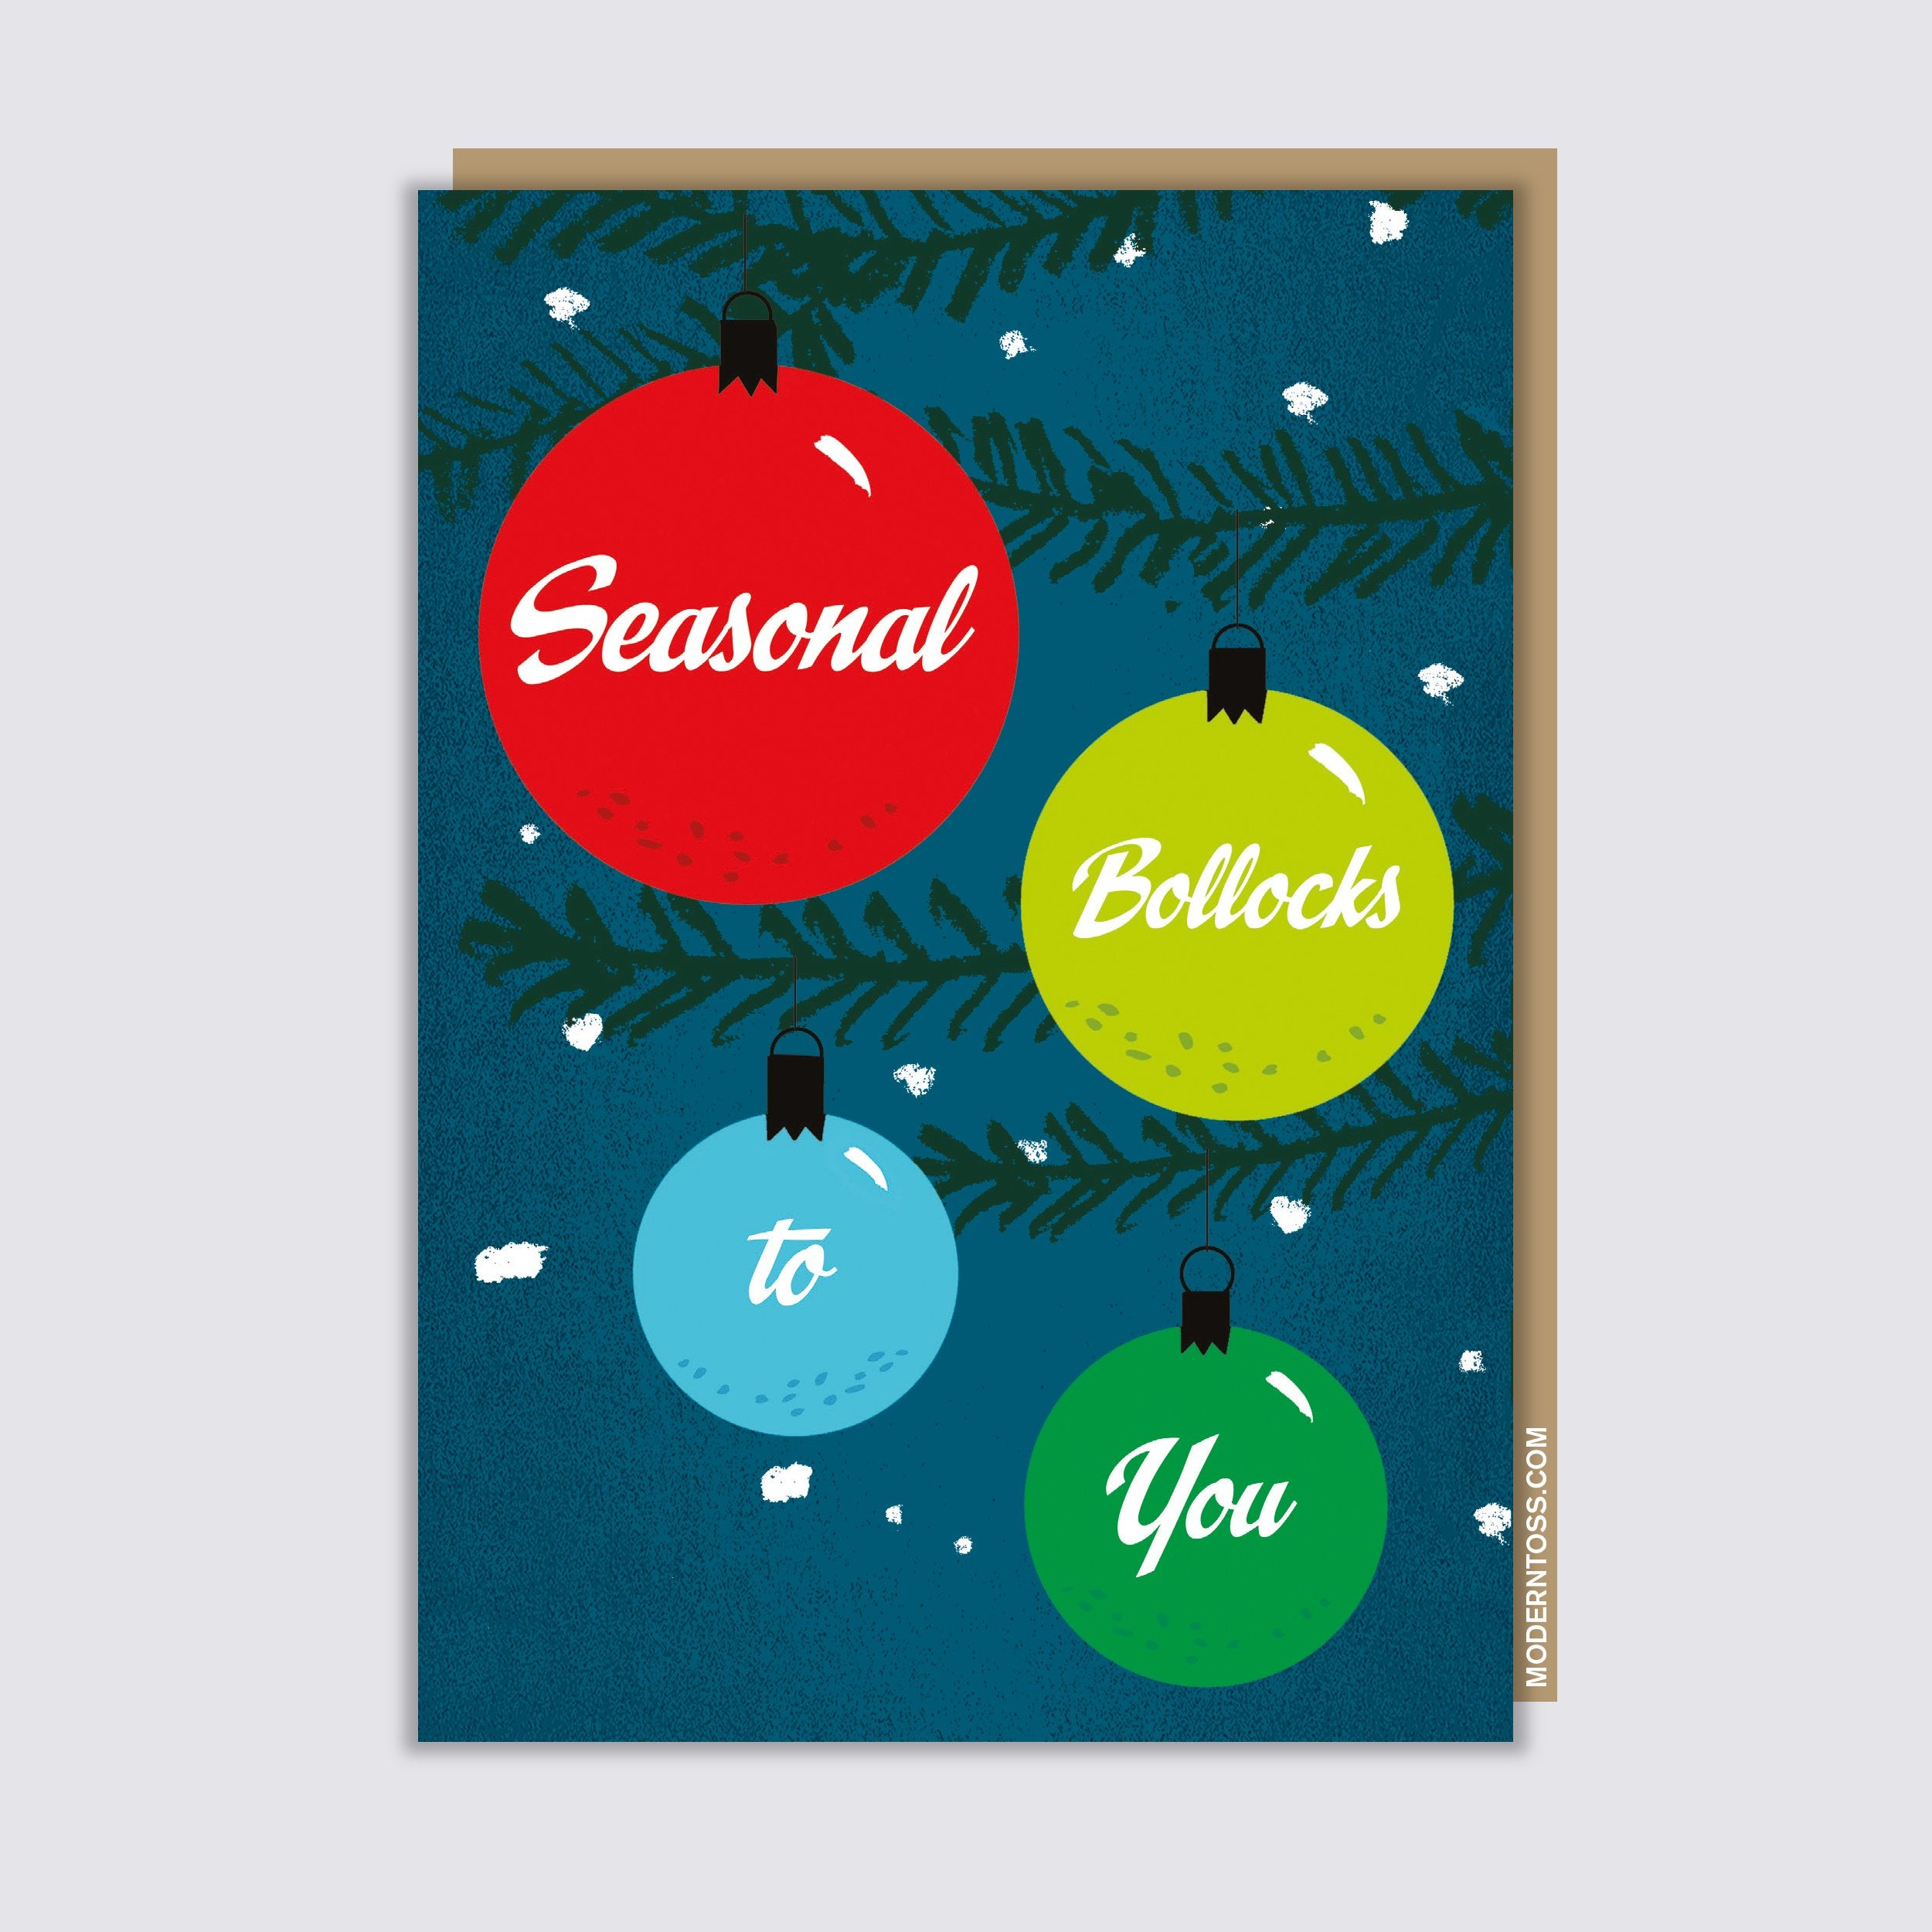 Seasonal Bollocks Card